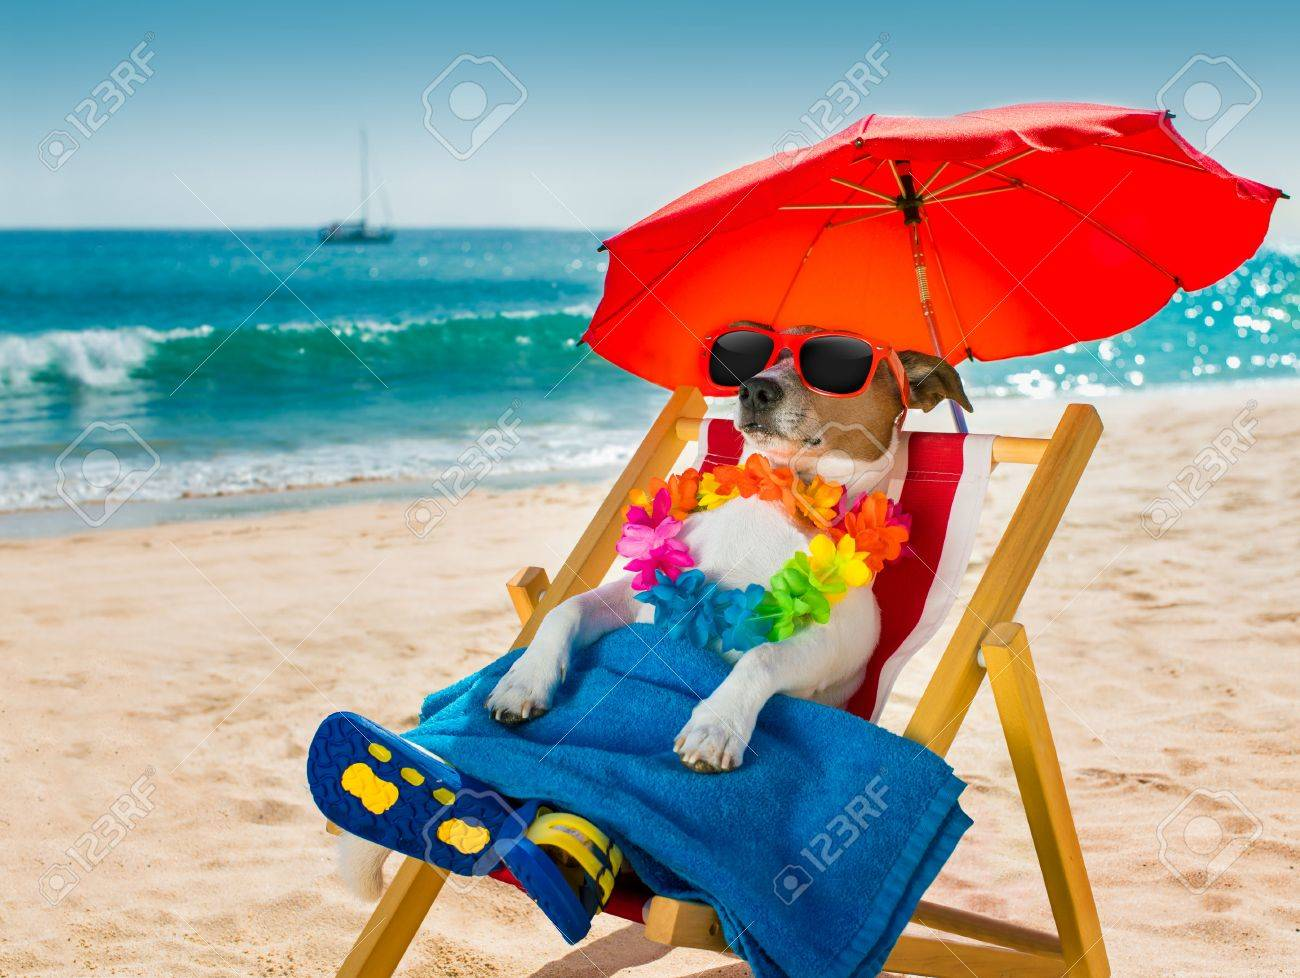 jack russel dog resting and relaxing on a hammock or beach chair